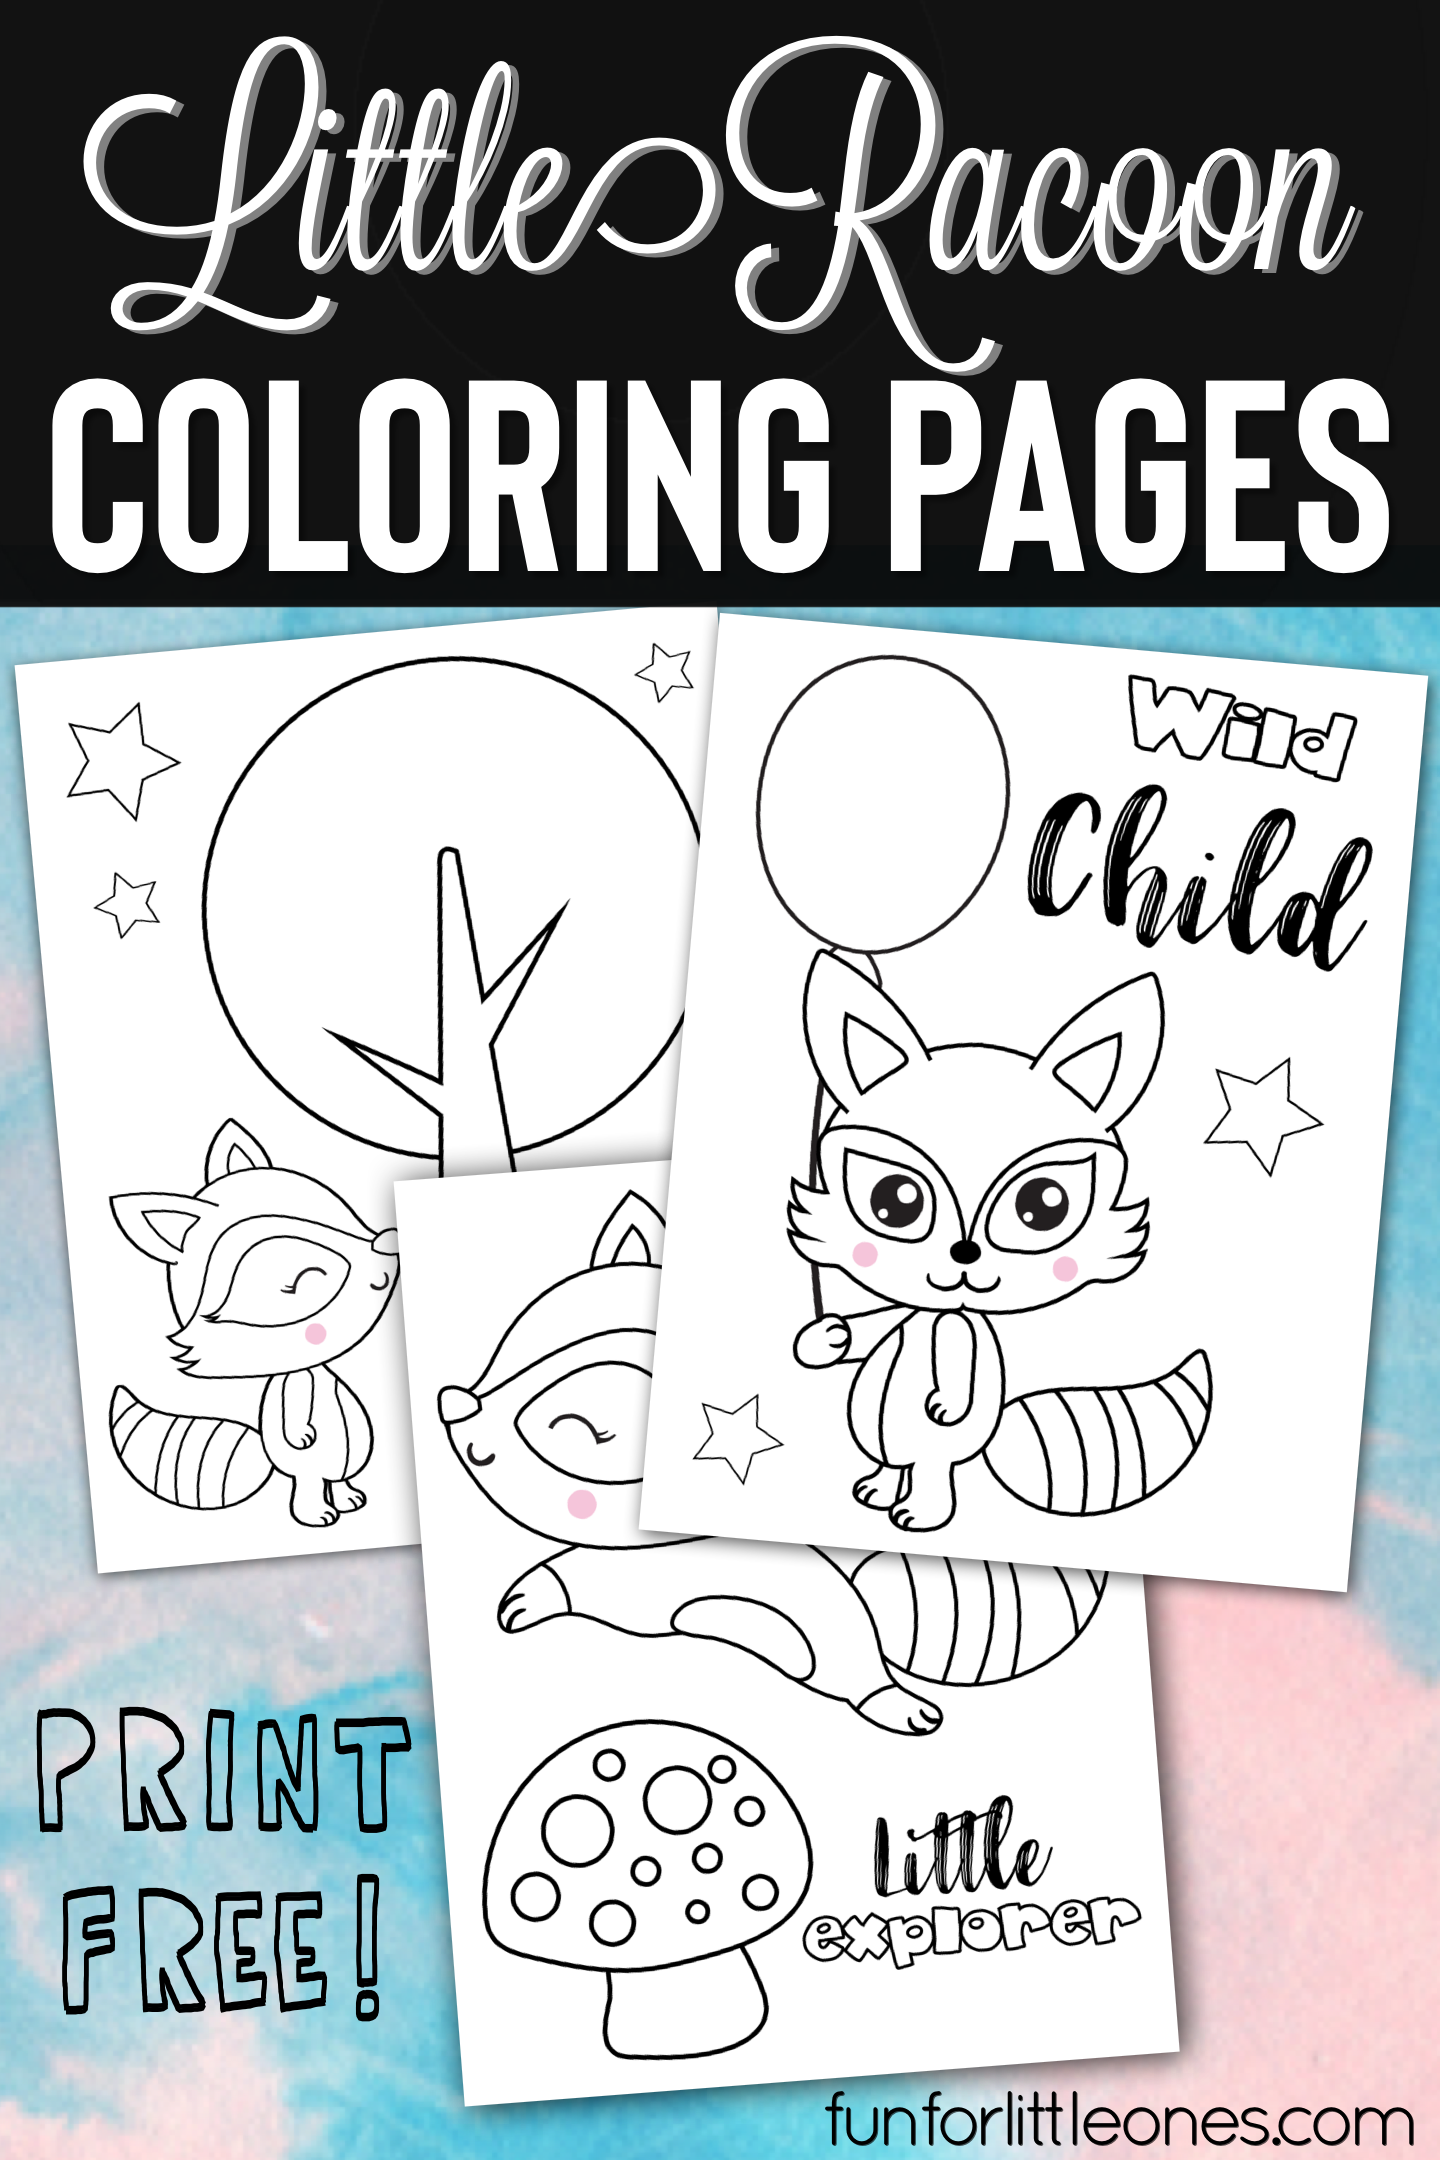 Little Raccoon Coloring Pages For Kids Fun For Little Ones Coloring Pages Train Coloring Pages Coloring Pages For Kids